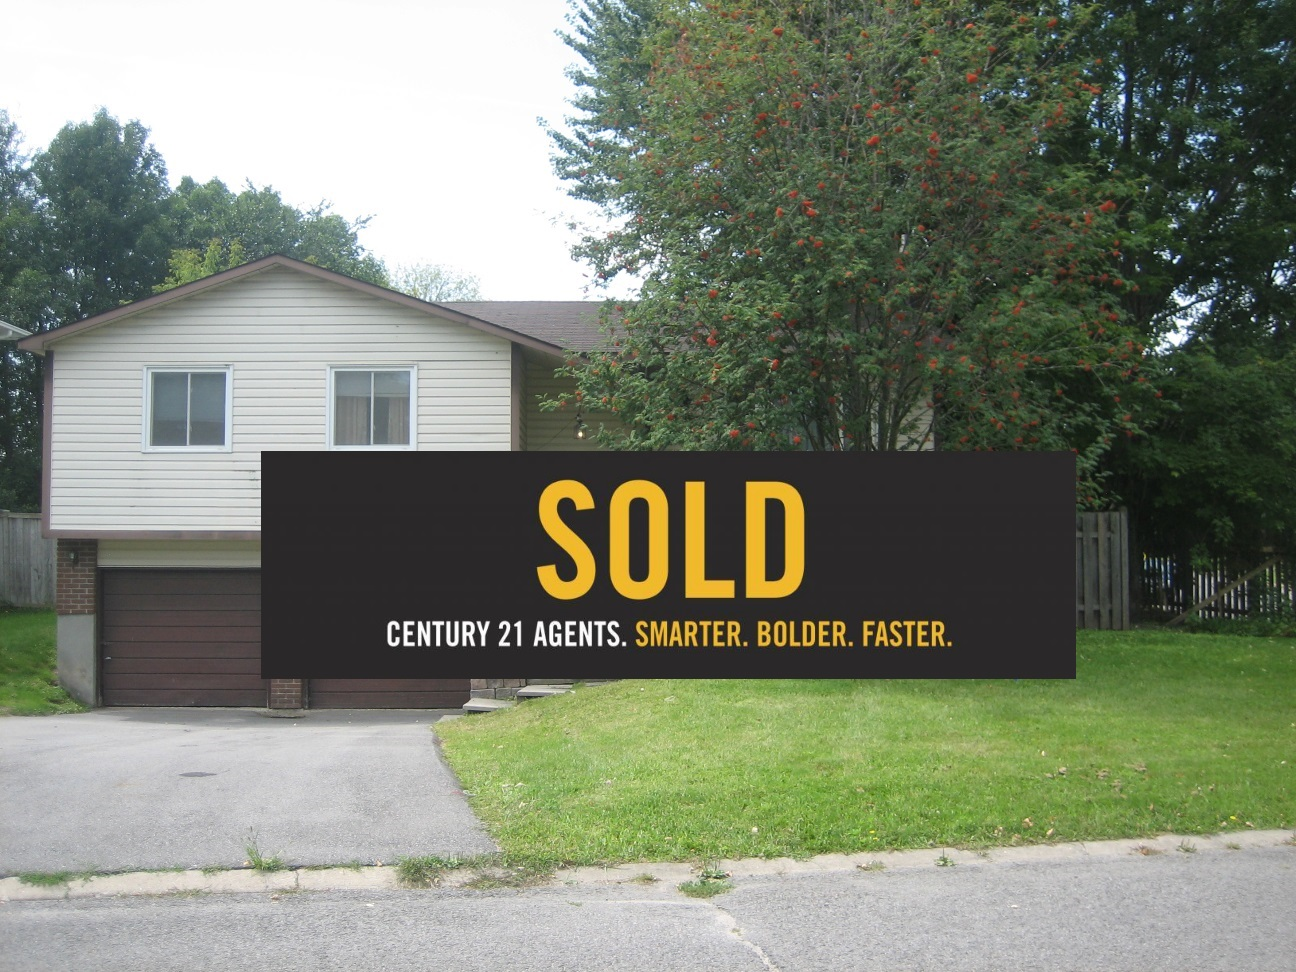 SOLD: 39 Chanonhouse Dr, Richmond | Nilay Ertemur